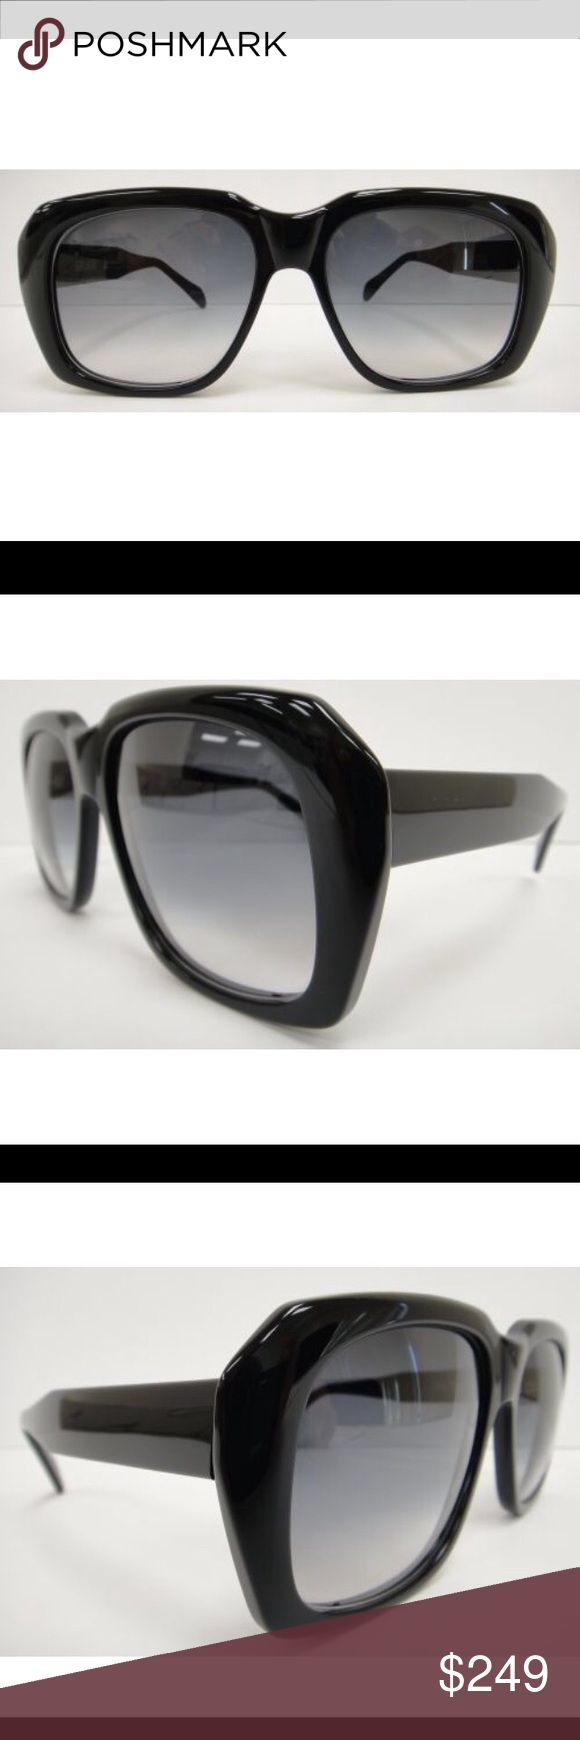 ULTRA GOLIATH II SUNGLASSES BLACK Robert de Niro Genuine, Authentic Brand New ULTRA GOLIATH II SUNGLASSES  FRAME COLOR: GLOSS BLACK WITH GREY GRADIENT LENSES  FRAME SIZE: 62-20-150 MADE IN HOLLAND IT COMES WITH CASE  Originally produced in 1970s. Being sported by actors or musicians such as Darryl McDaniels (also known as DMC) of Run DMC, Michael Caine, and Harry Carey or, more recently, to portray colourful film characters from the 1970s, such as Robert de Niro's Sam 'Ace' Rothstein in…